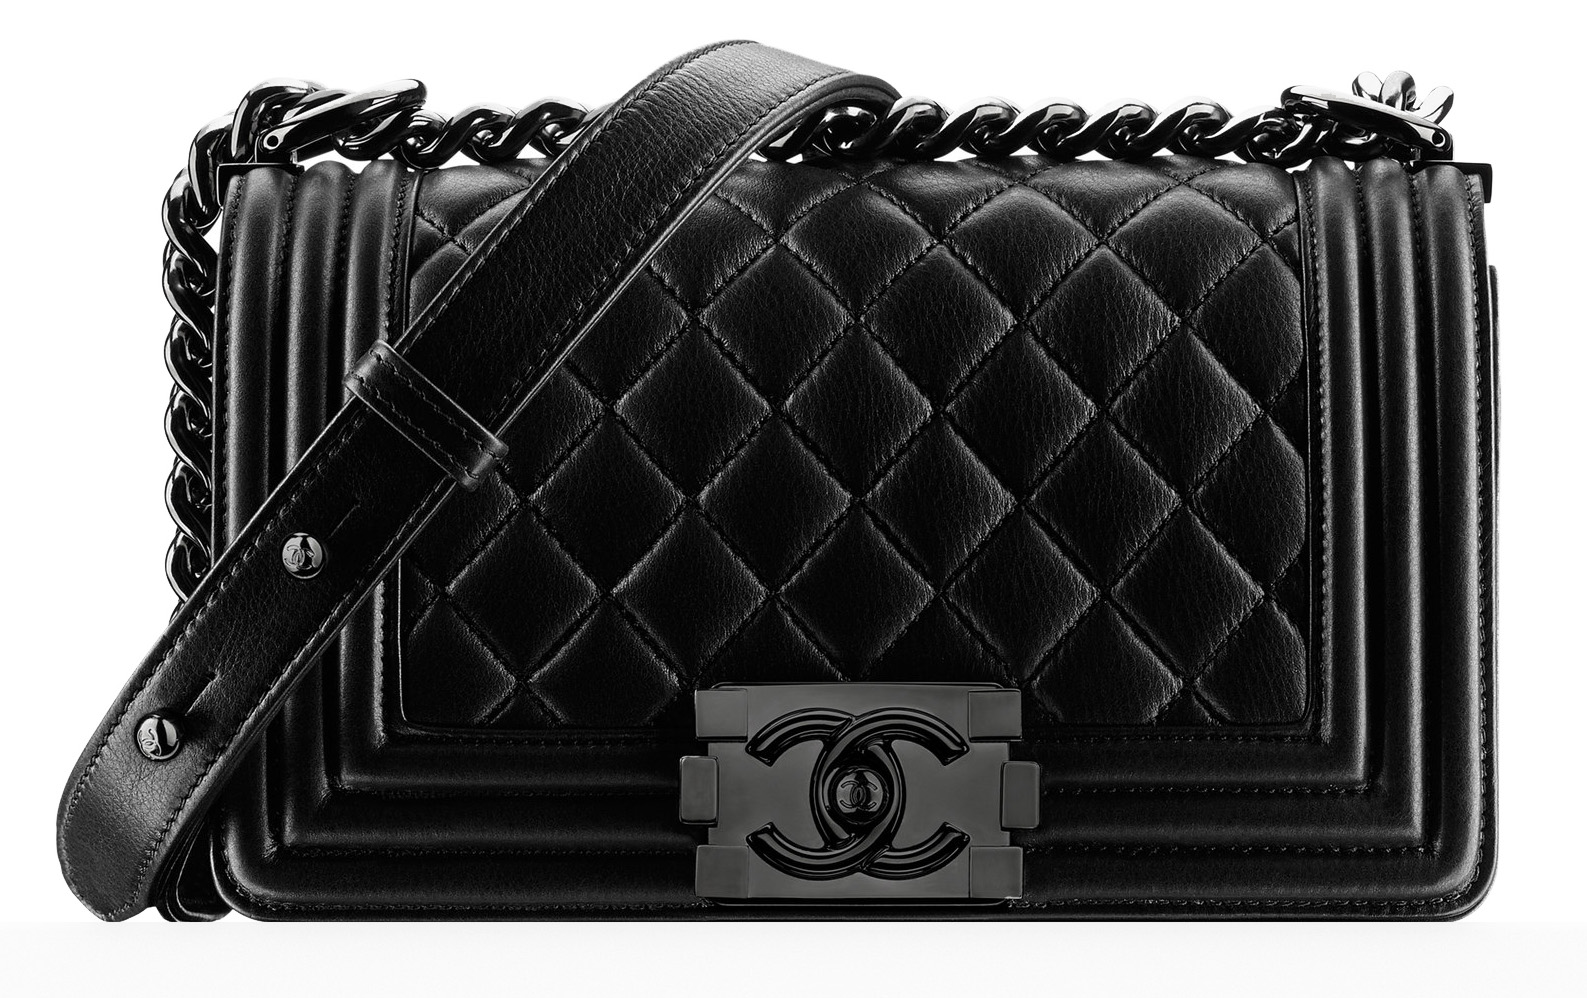 Chanel Small Boy Bag Black